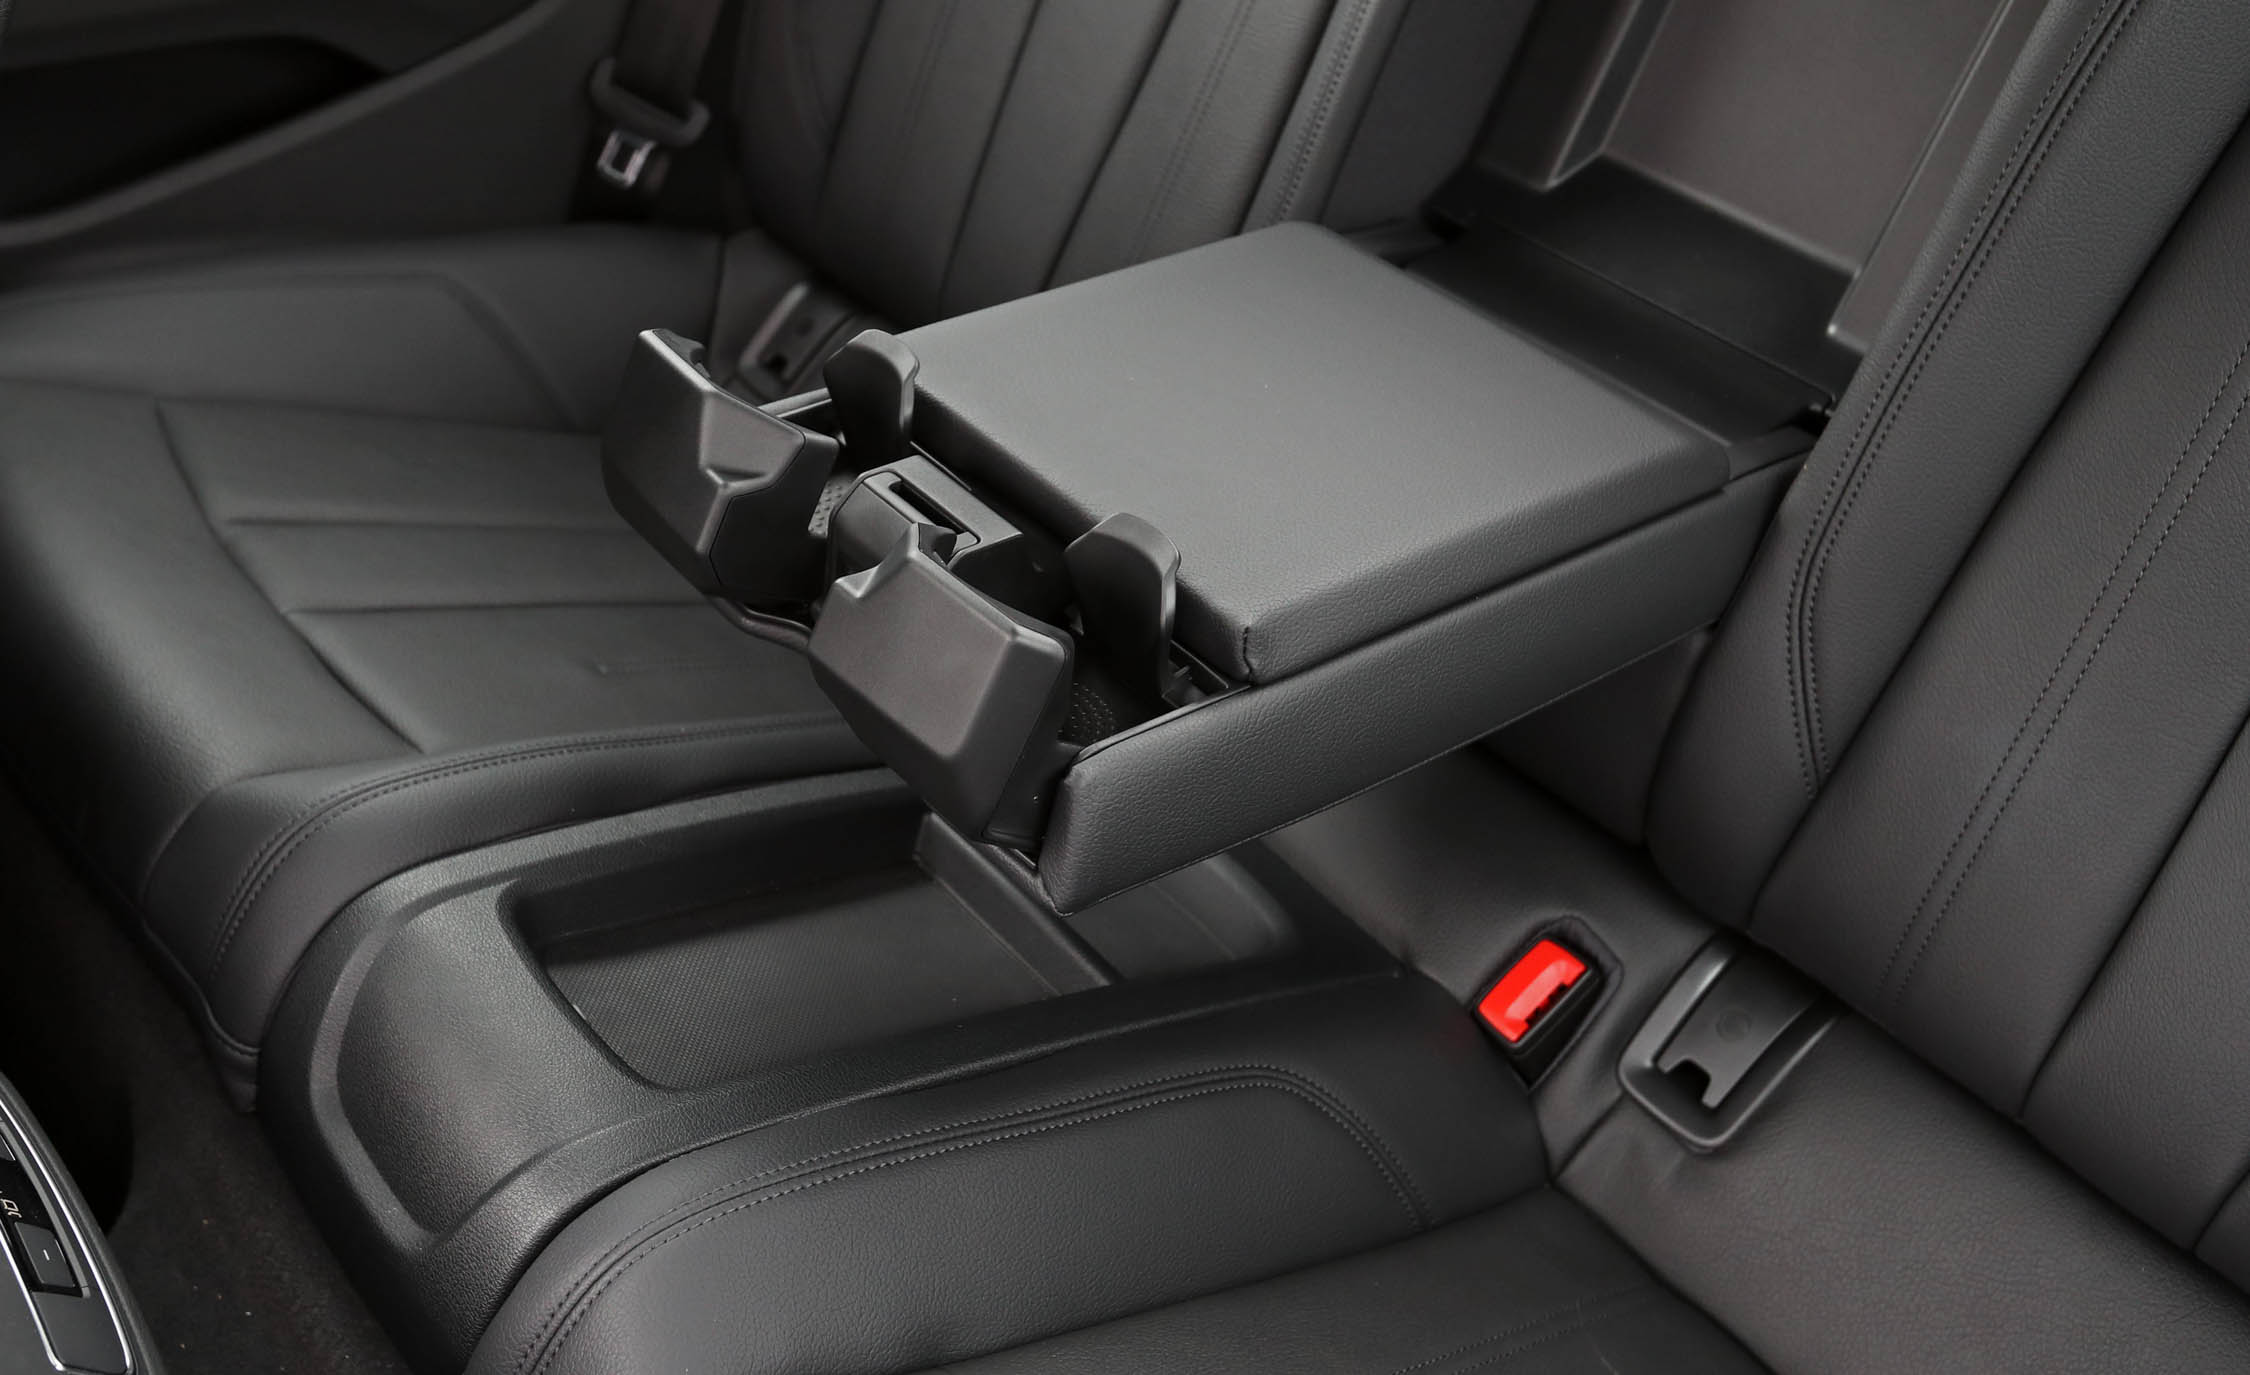 2018 Audi A5 Coupe Interior Seats Rear Armrest And Cup Holders (Photo 22 of 50)